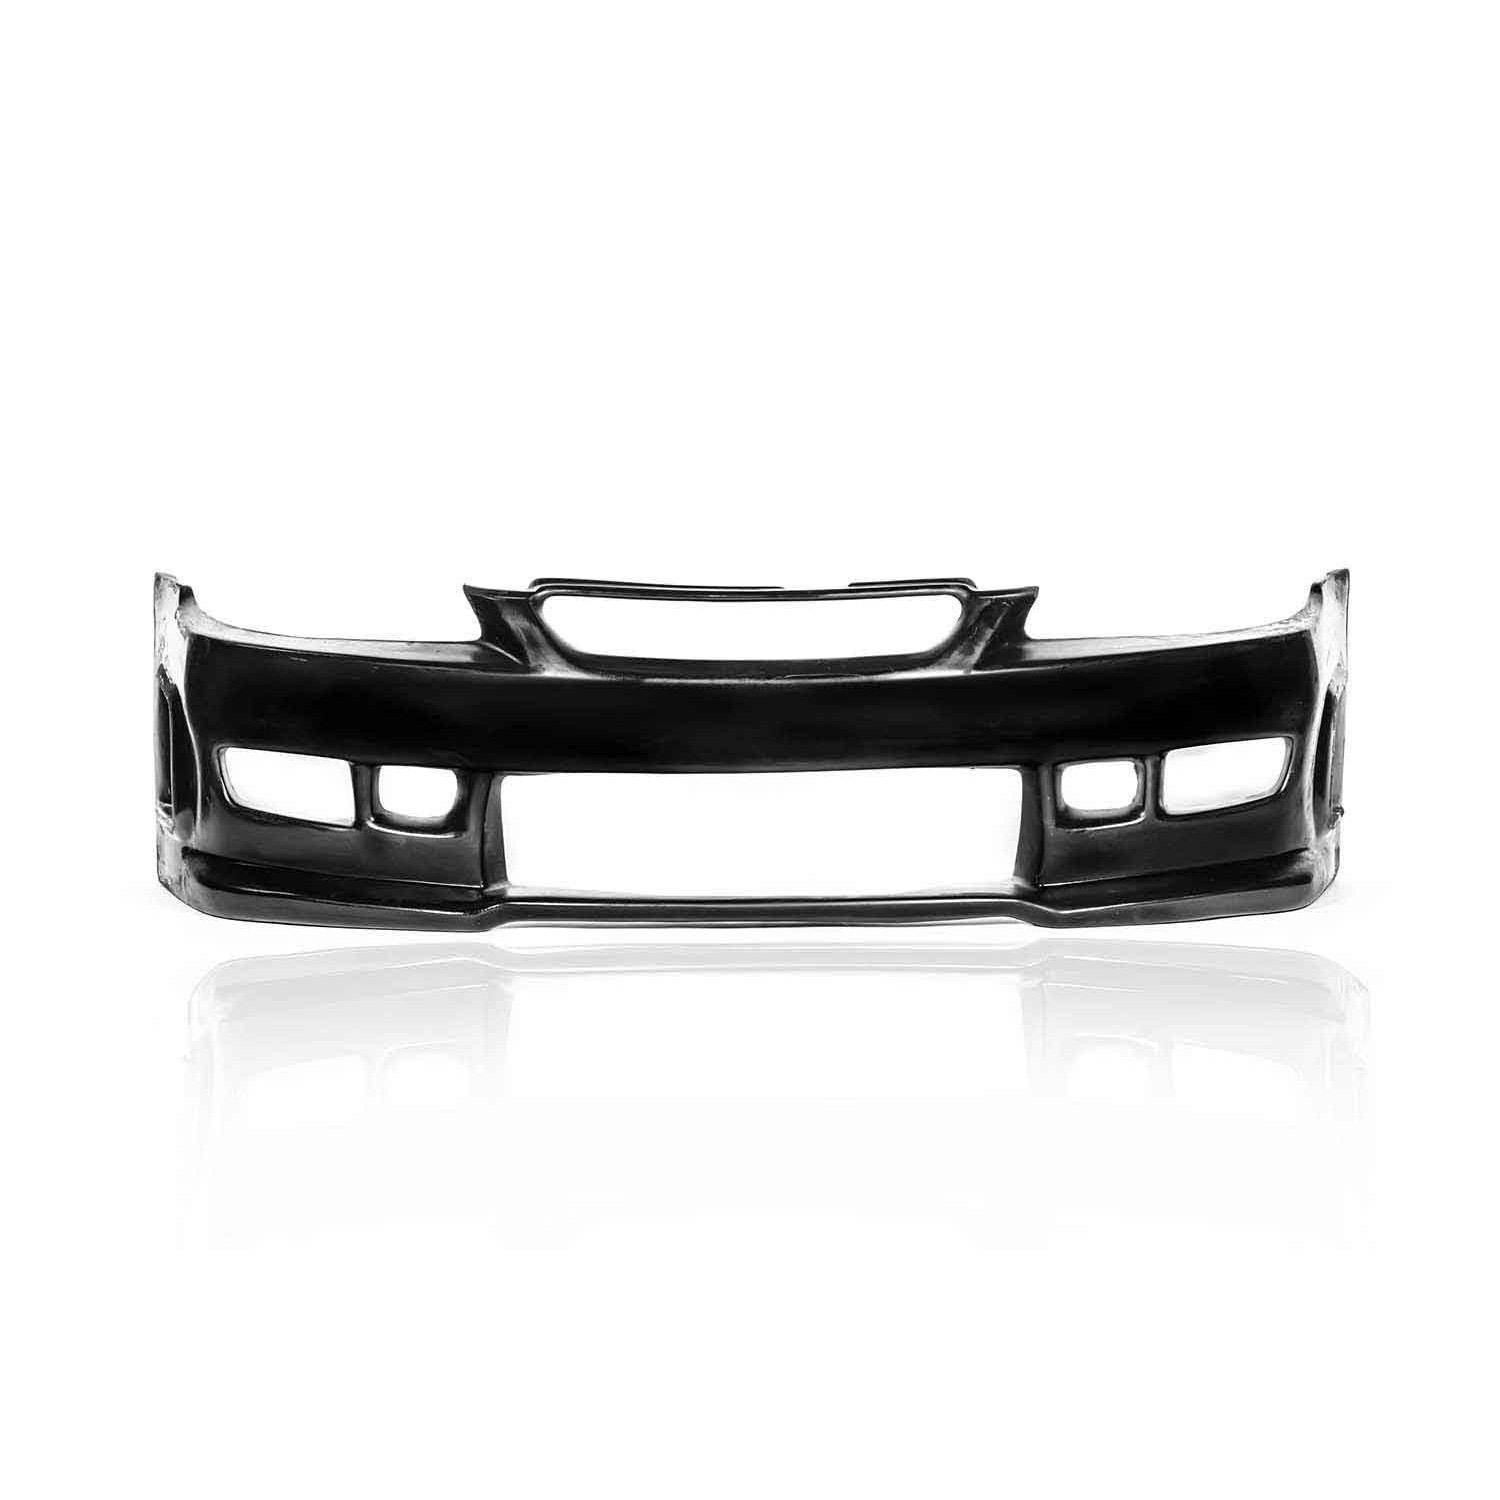 Honda Accord ALL 1998-2002 BW Spec Style 1 Piece Polyurethane Front Bumper